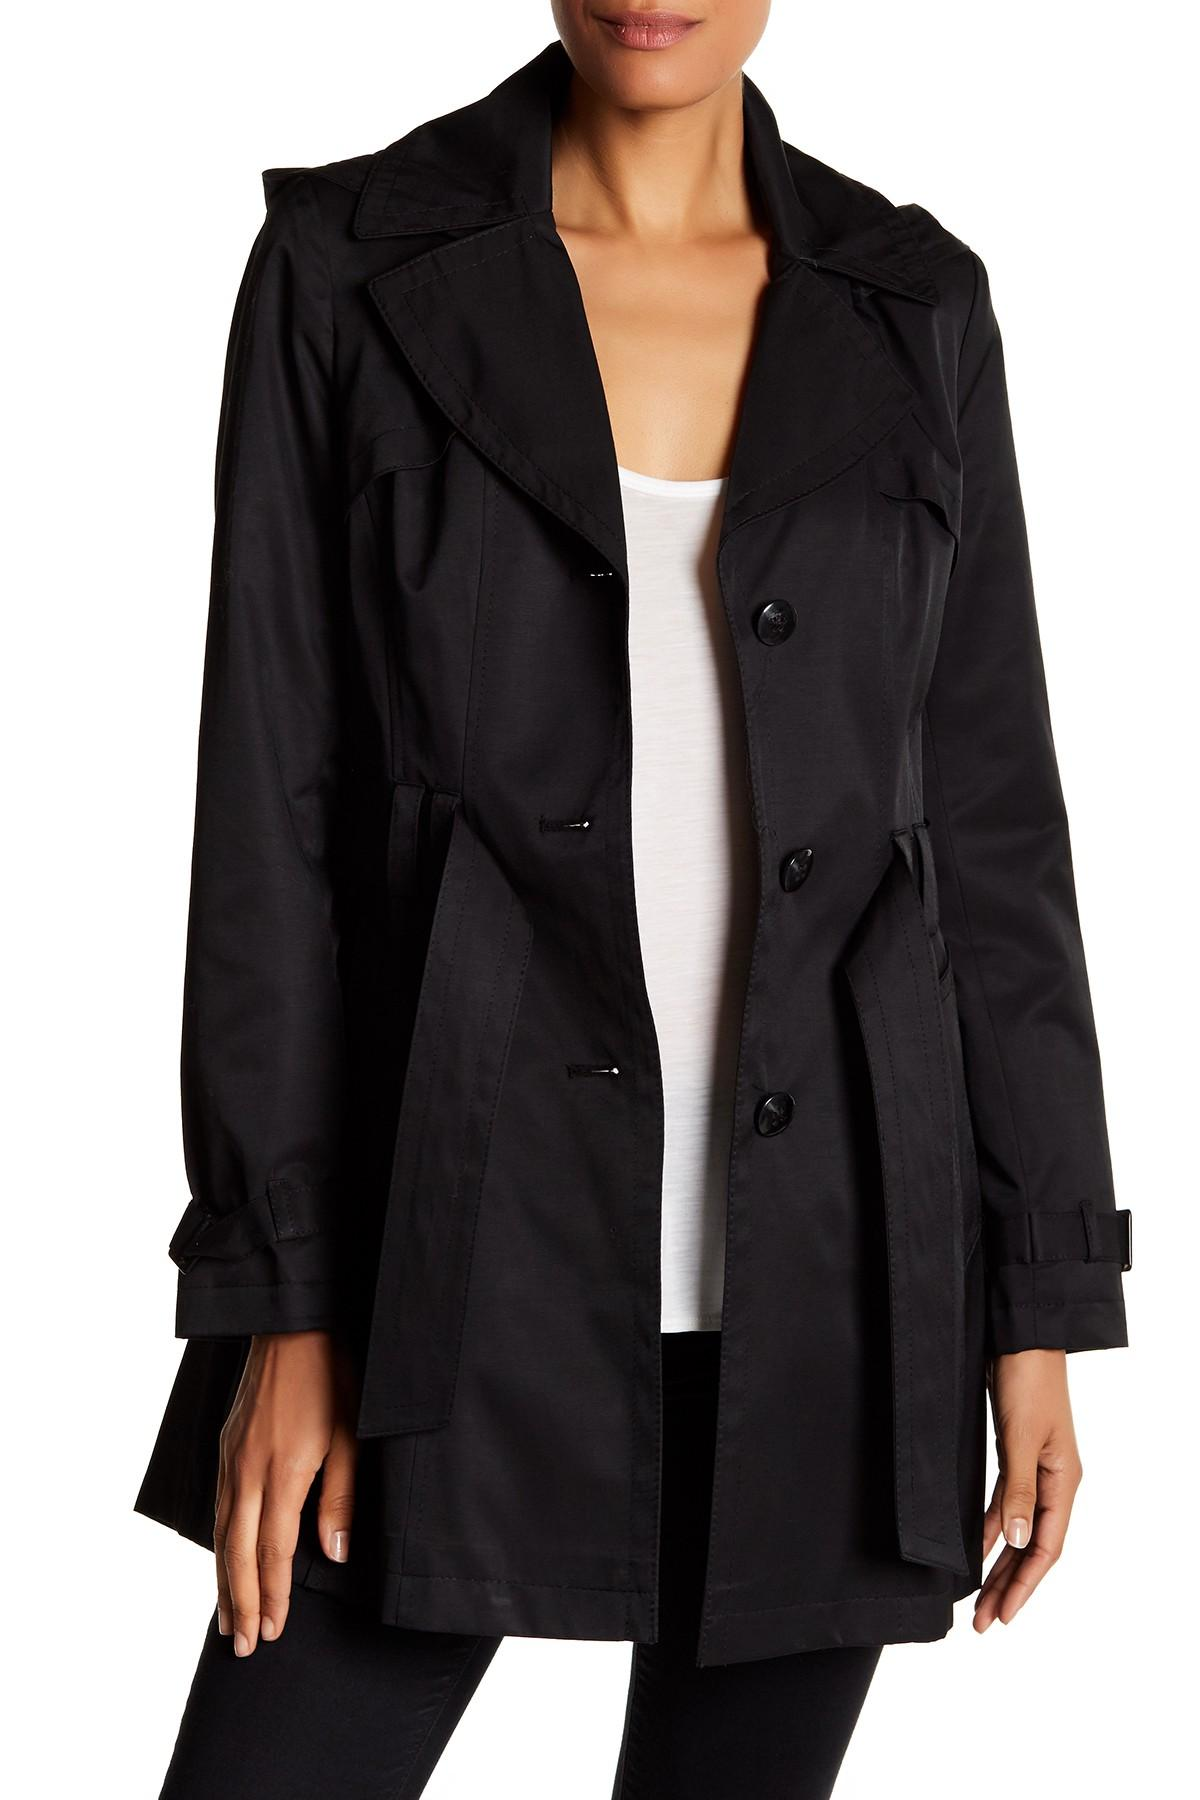 black trench coat with hood - photo #23